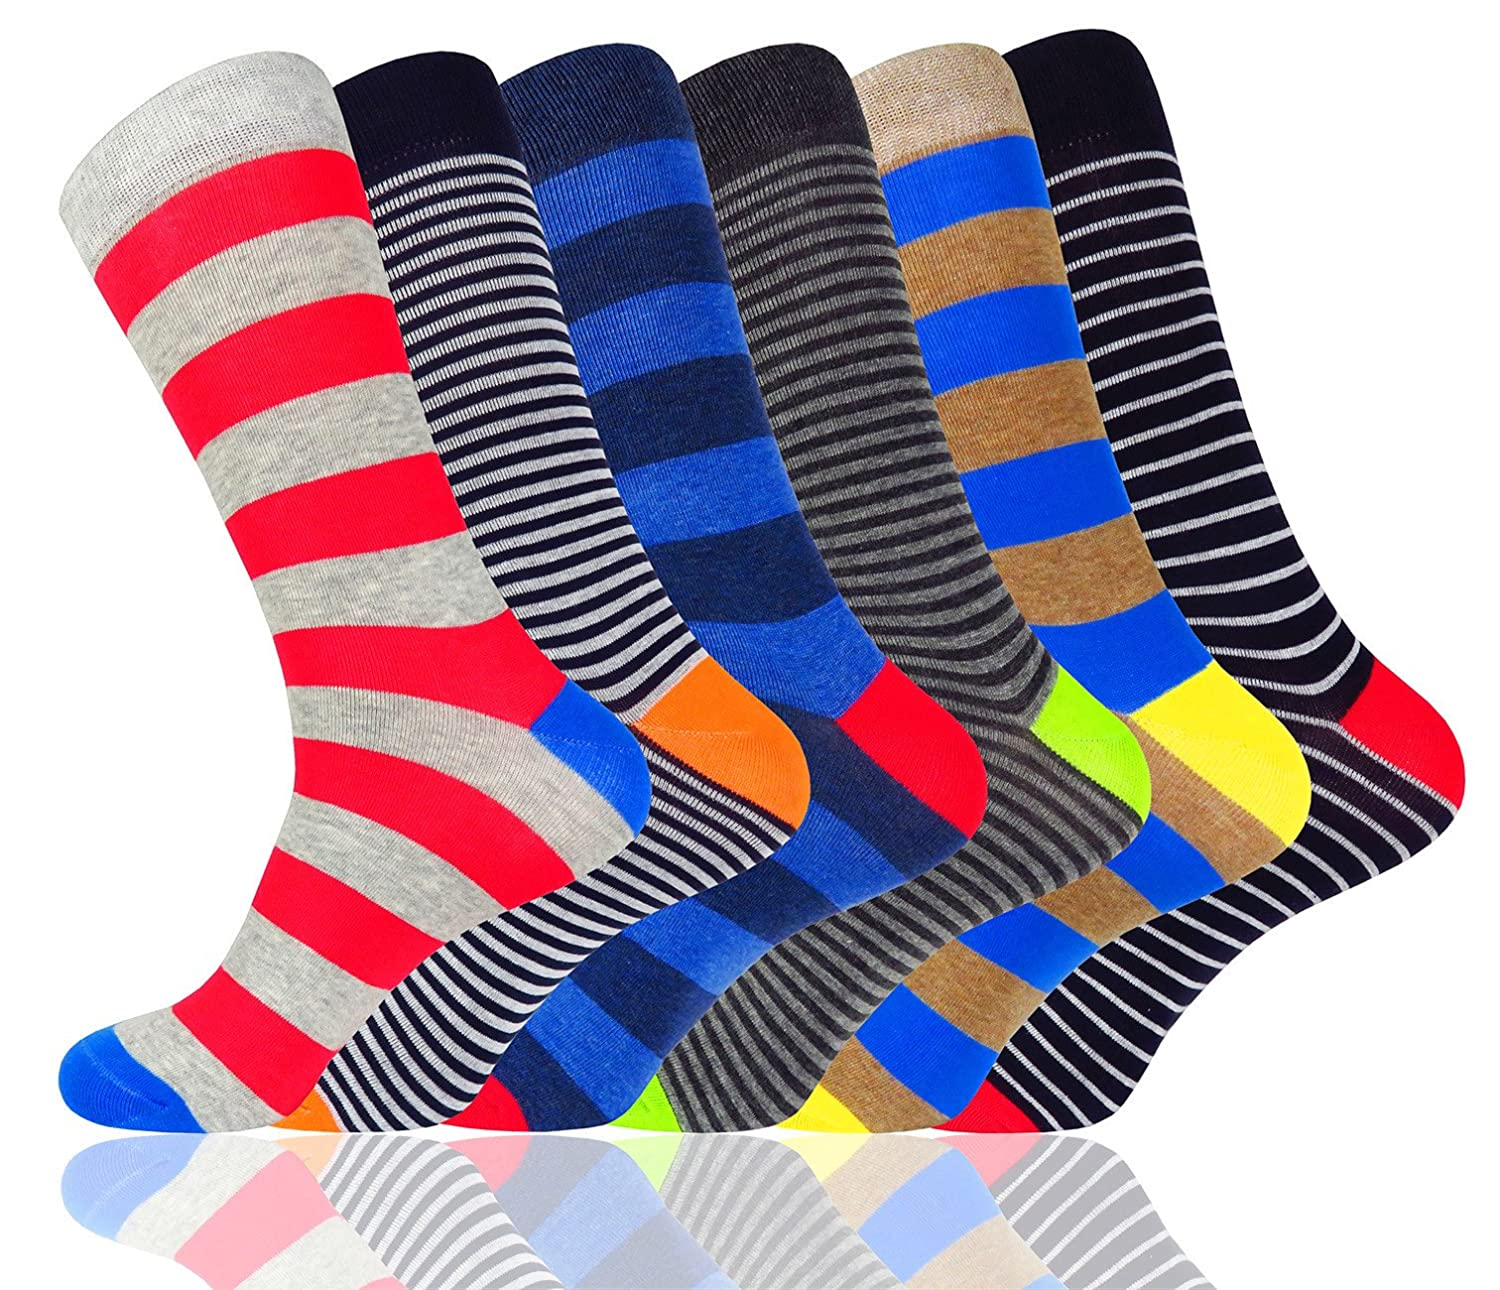 WEILAI Men's Novelty Funky Colorful Cool Dress Socks-Combed Cotton Casual Crew Socks